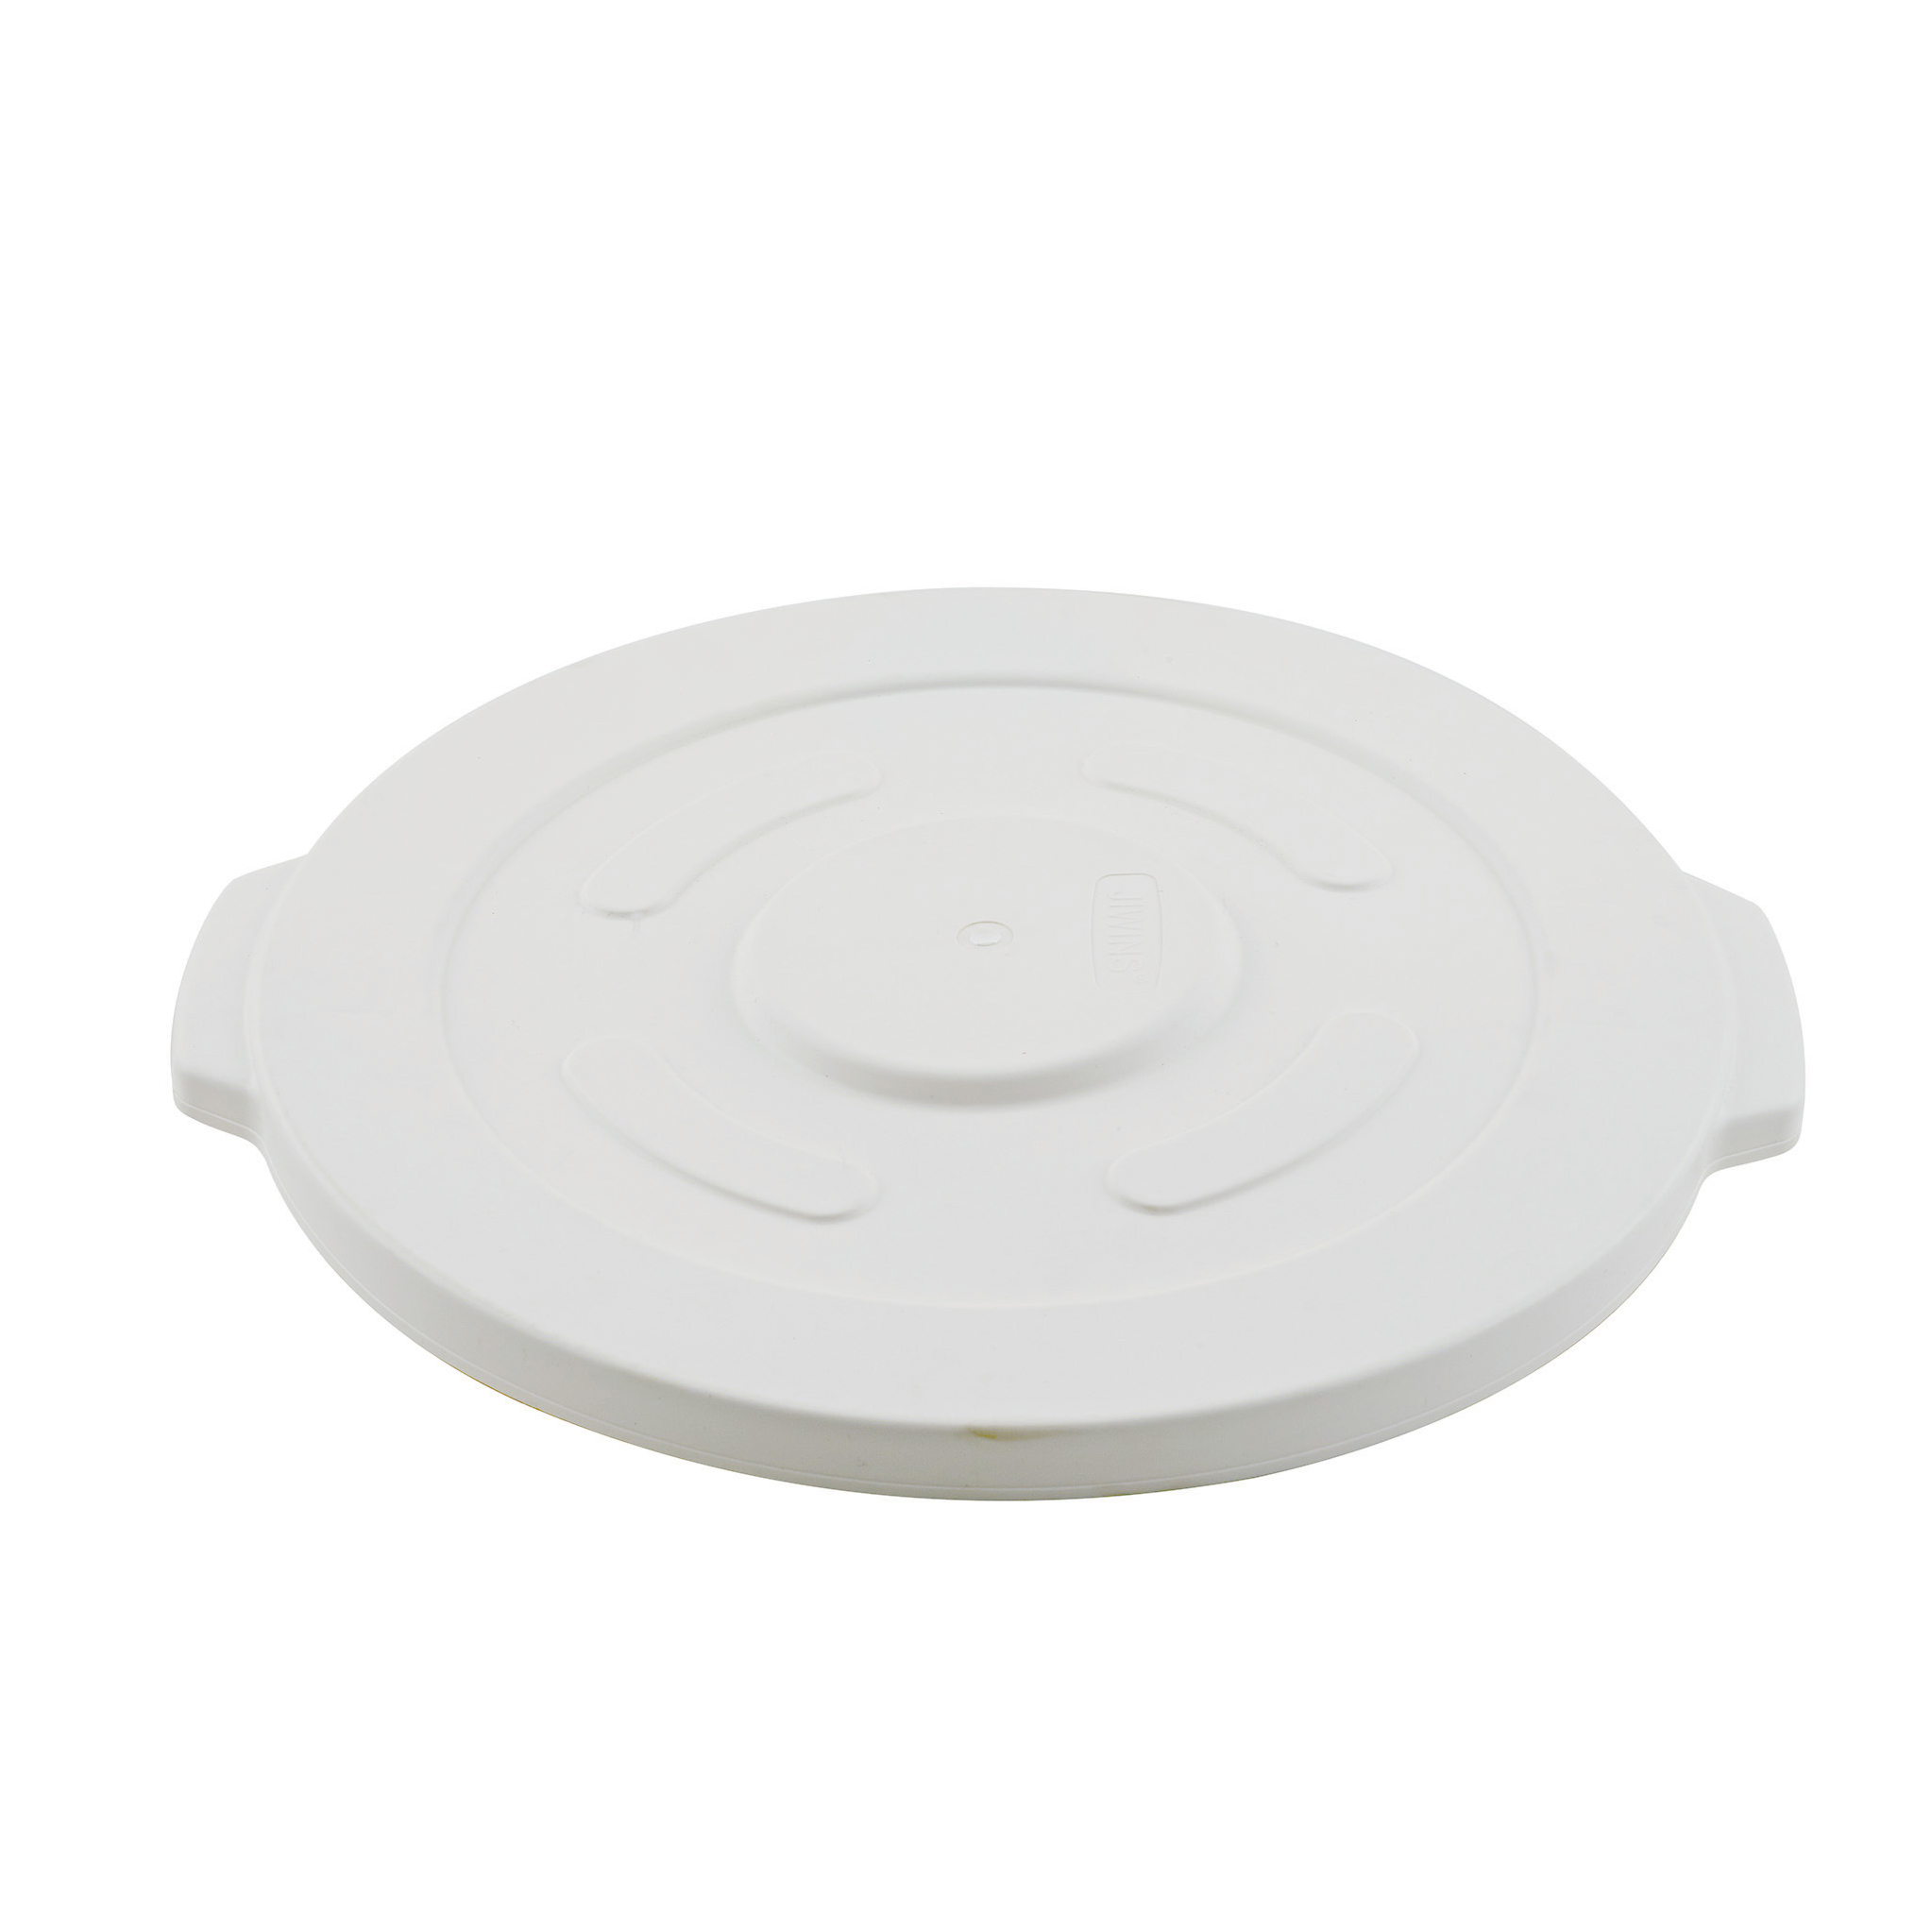 Winco FCW-10L trash receptacle lid / top